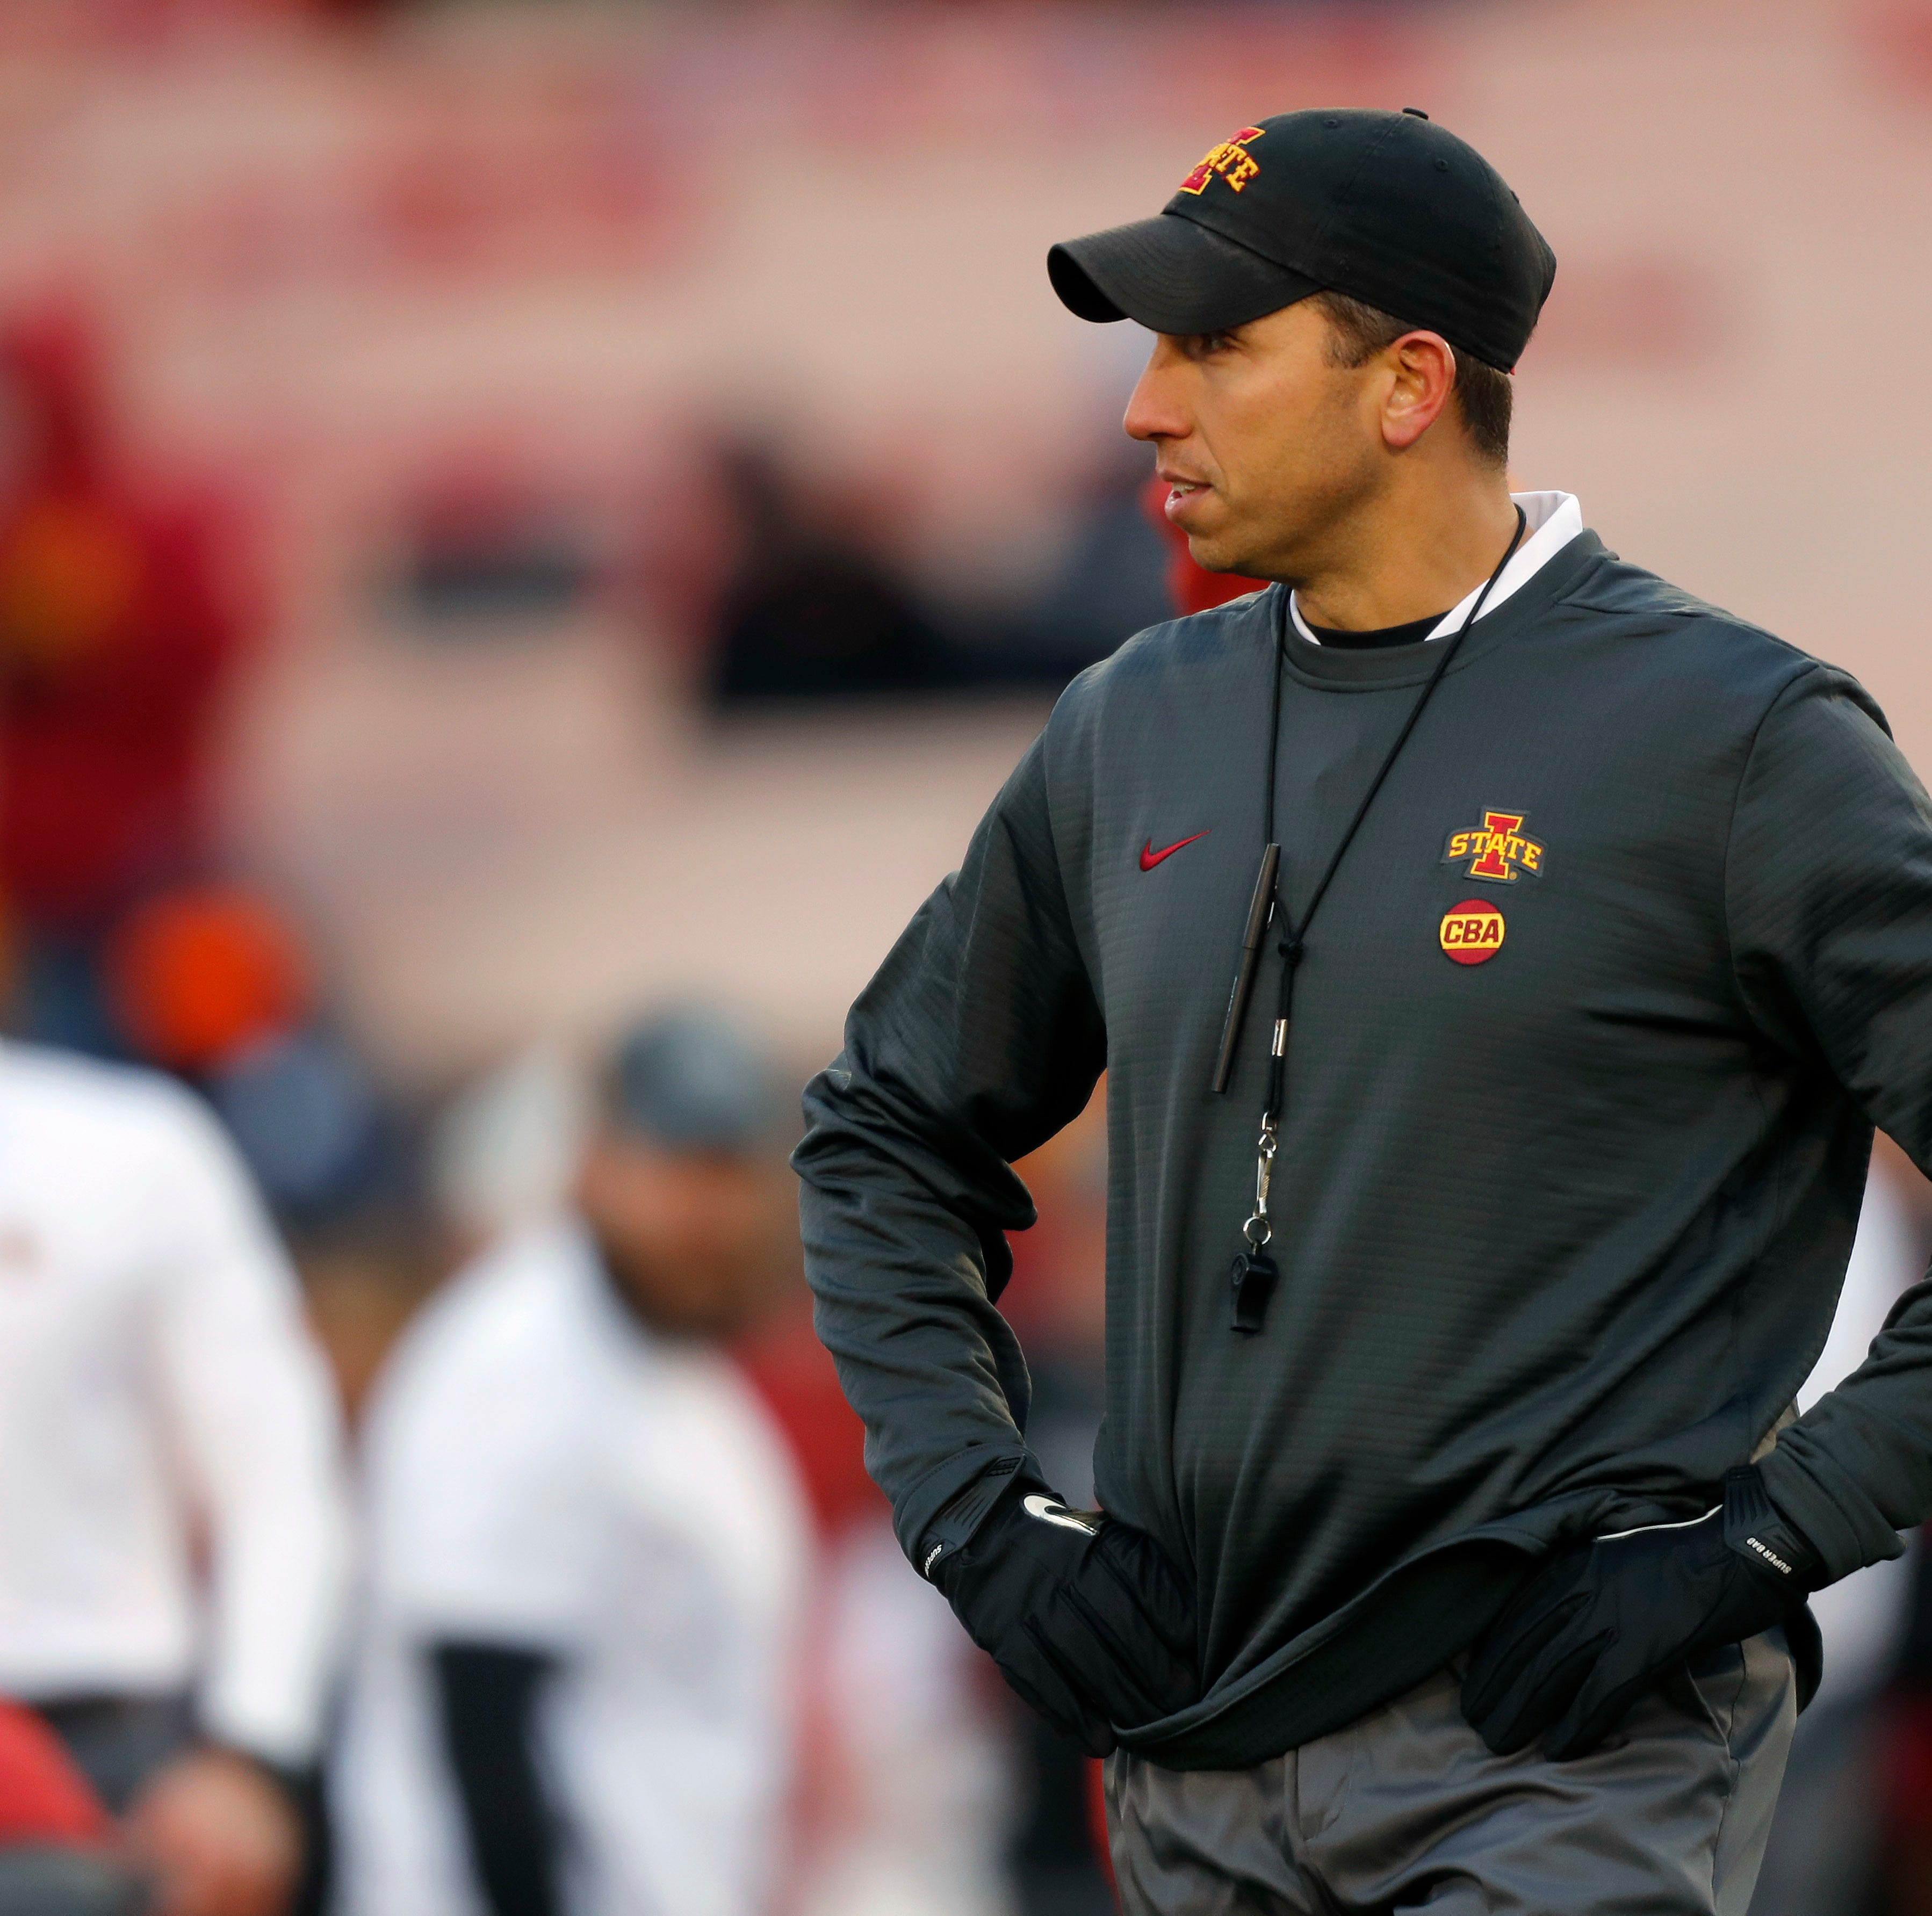 Peterson: Iowa State football's assistant coaches reap the benefits of Matt Campbell's new contract